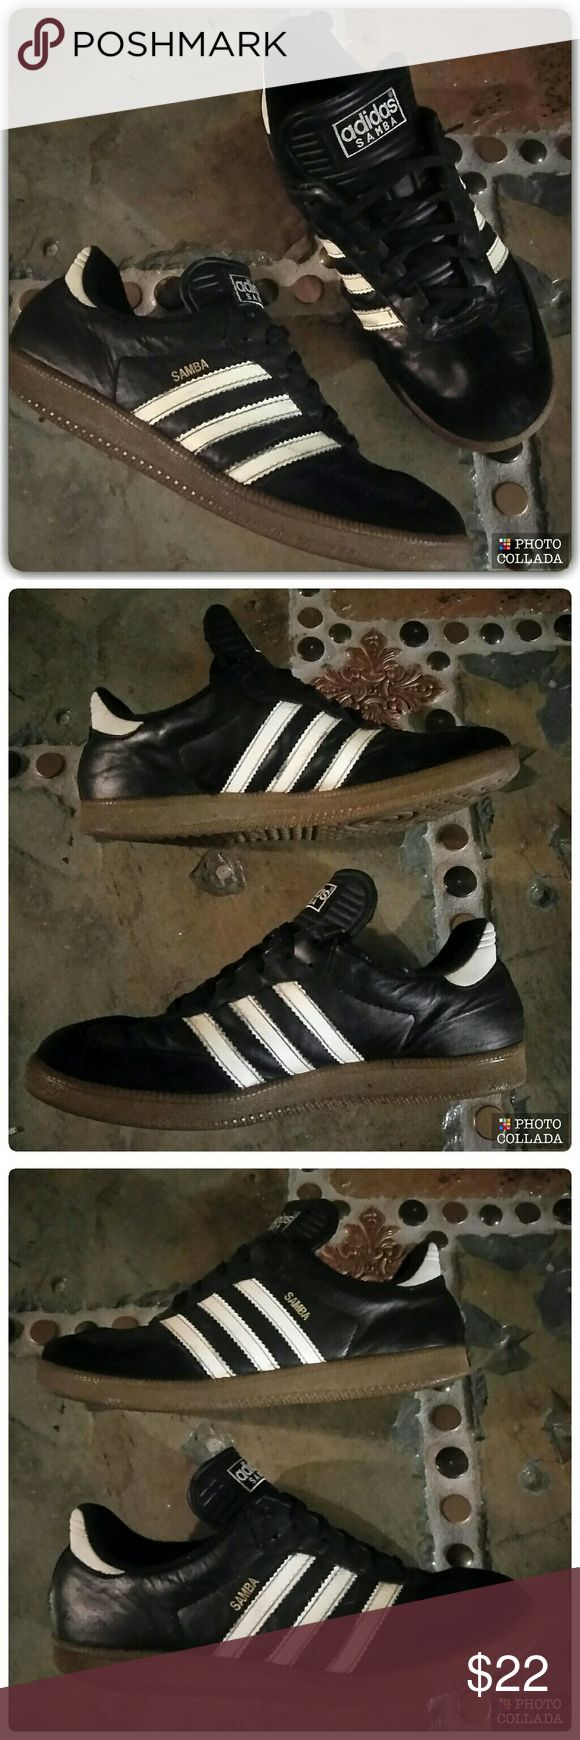 Kids Indoor Soccer Shoes There's a reason this legendary indoor shoe still sells like mad. Perfection never goes out of style.  Size:      6 K Soft leather upper  Low-profile gum rubber outsole Black with white accents Barely worn Excellent condition adidas Shoes Sneakers